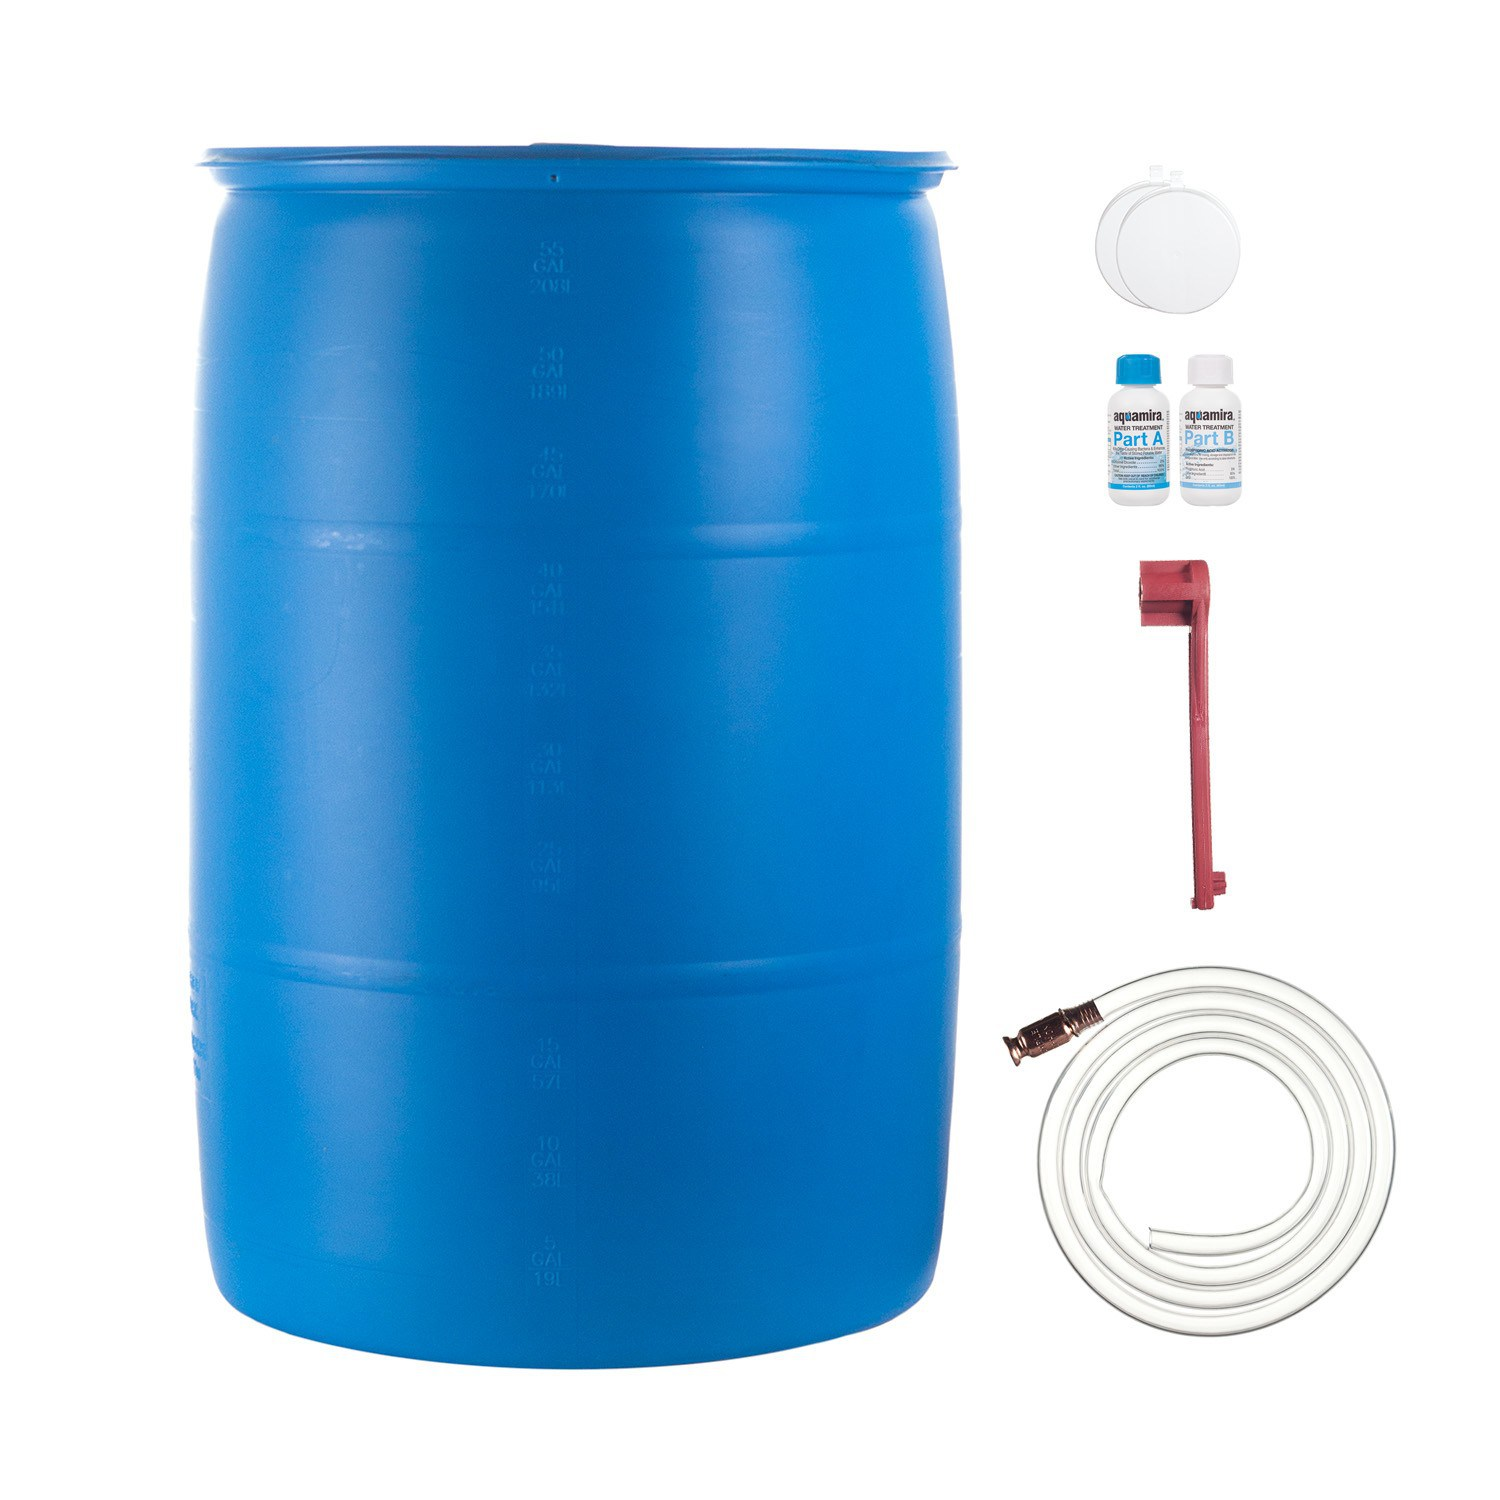 Water Storage Containers for Prepping - Dedicated Prepper